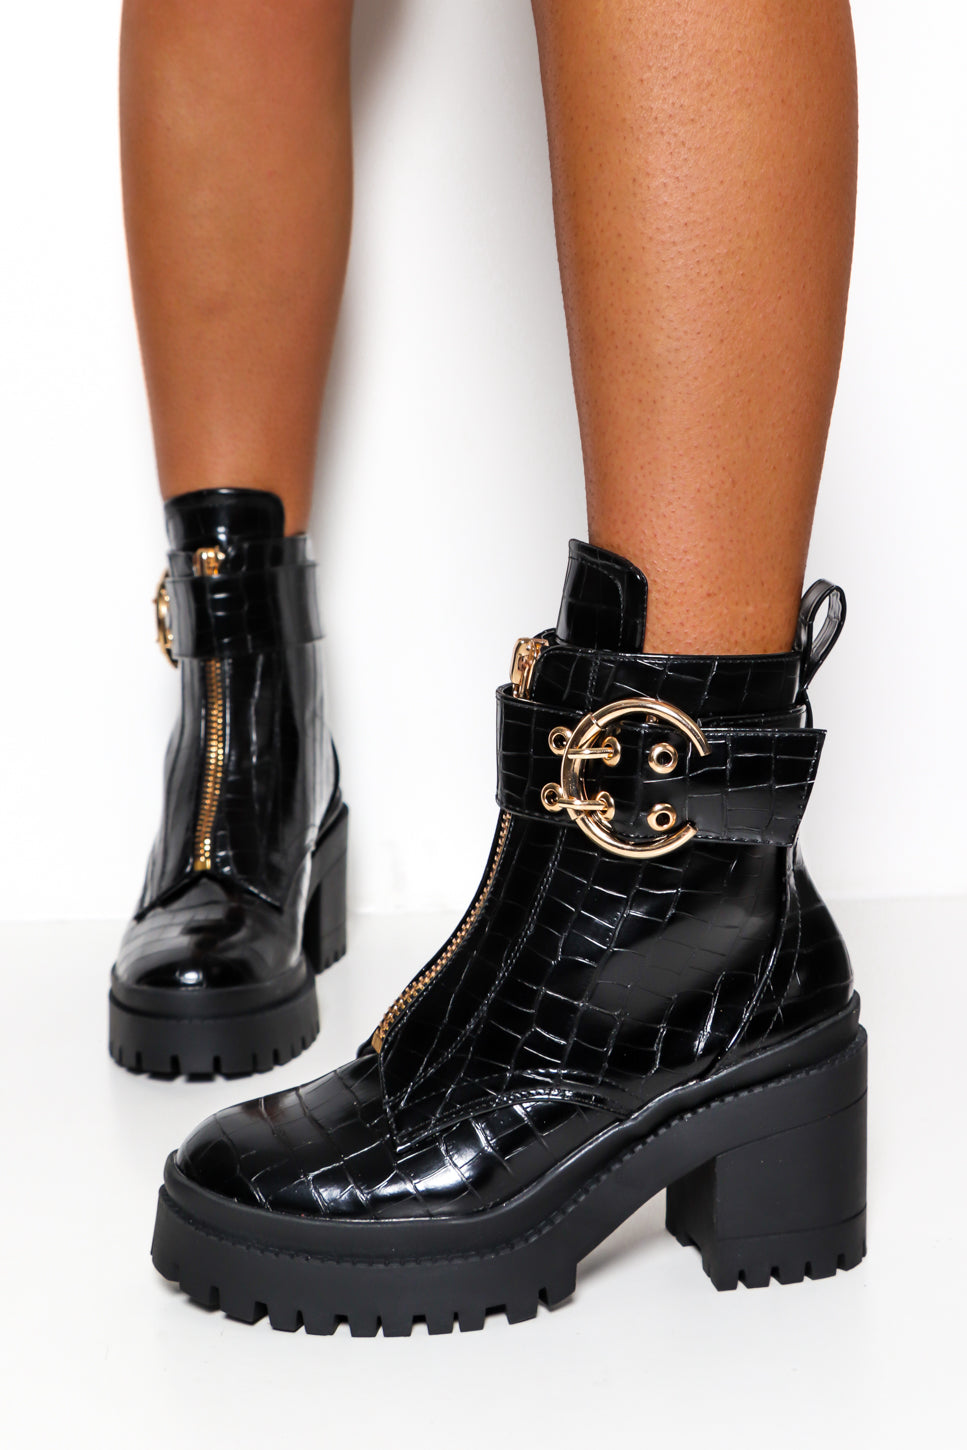 Big Time Crush - Black Croc Gold Detail Chunky Boot